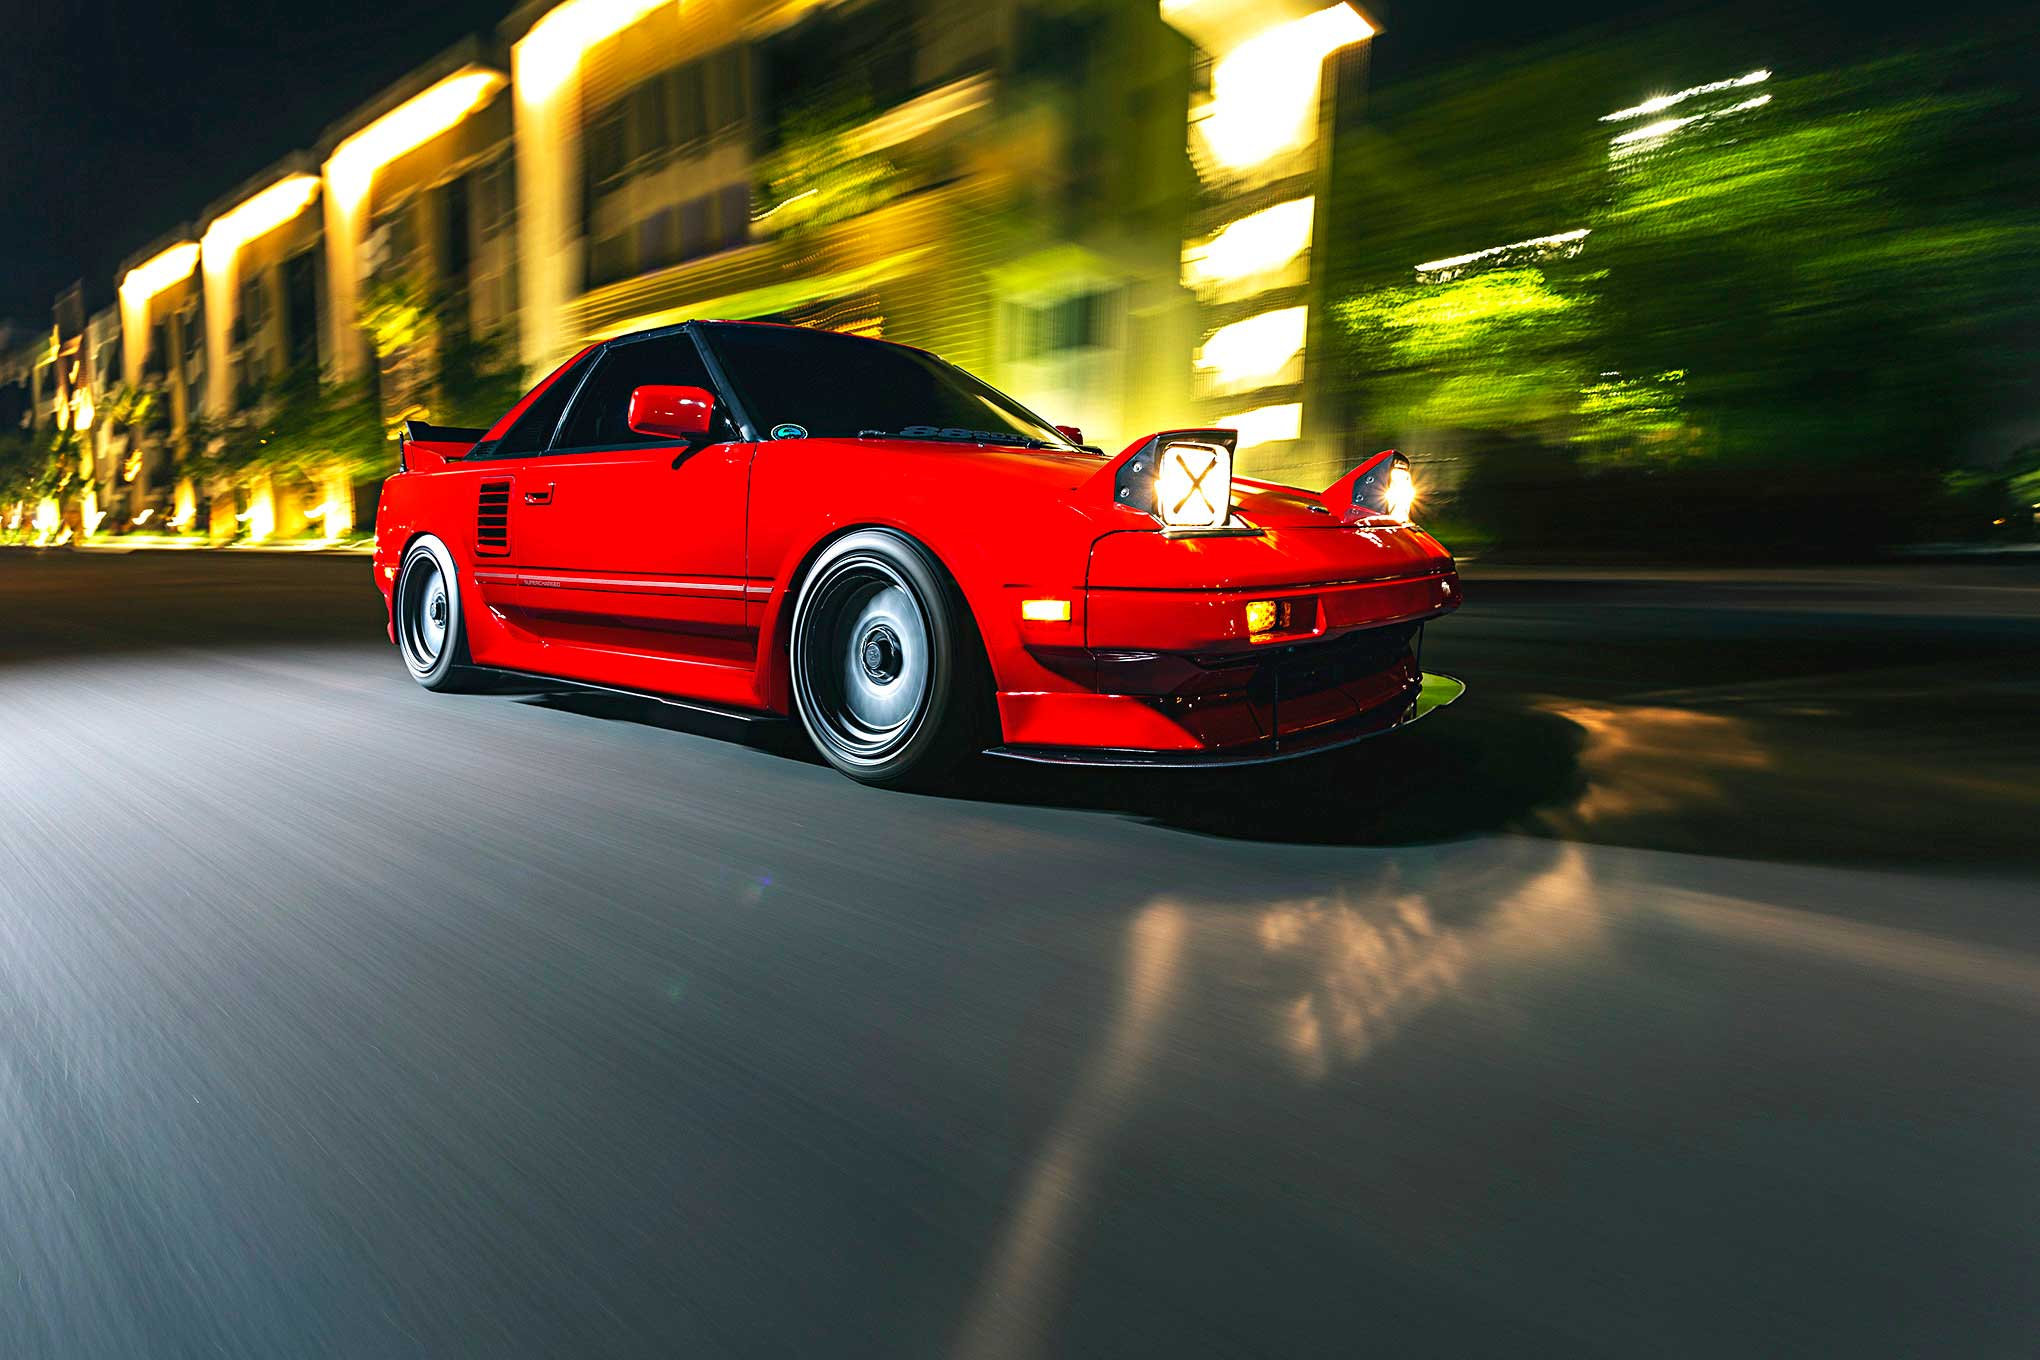 hight resolution of 1994 toyota mr2 gt s playing with fire super street magazine 1989 toyota mr2 aw11